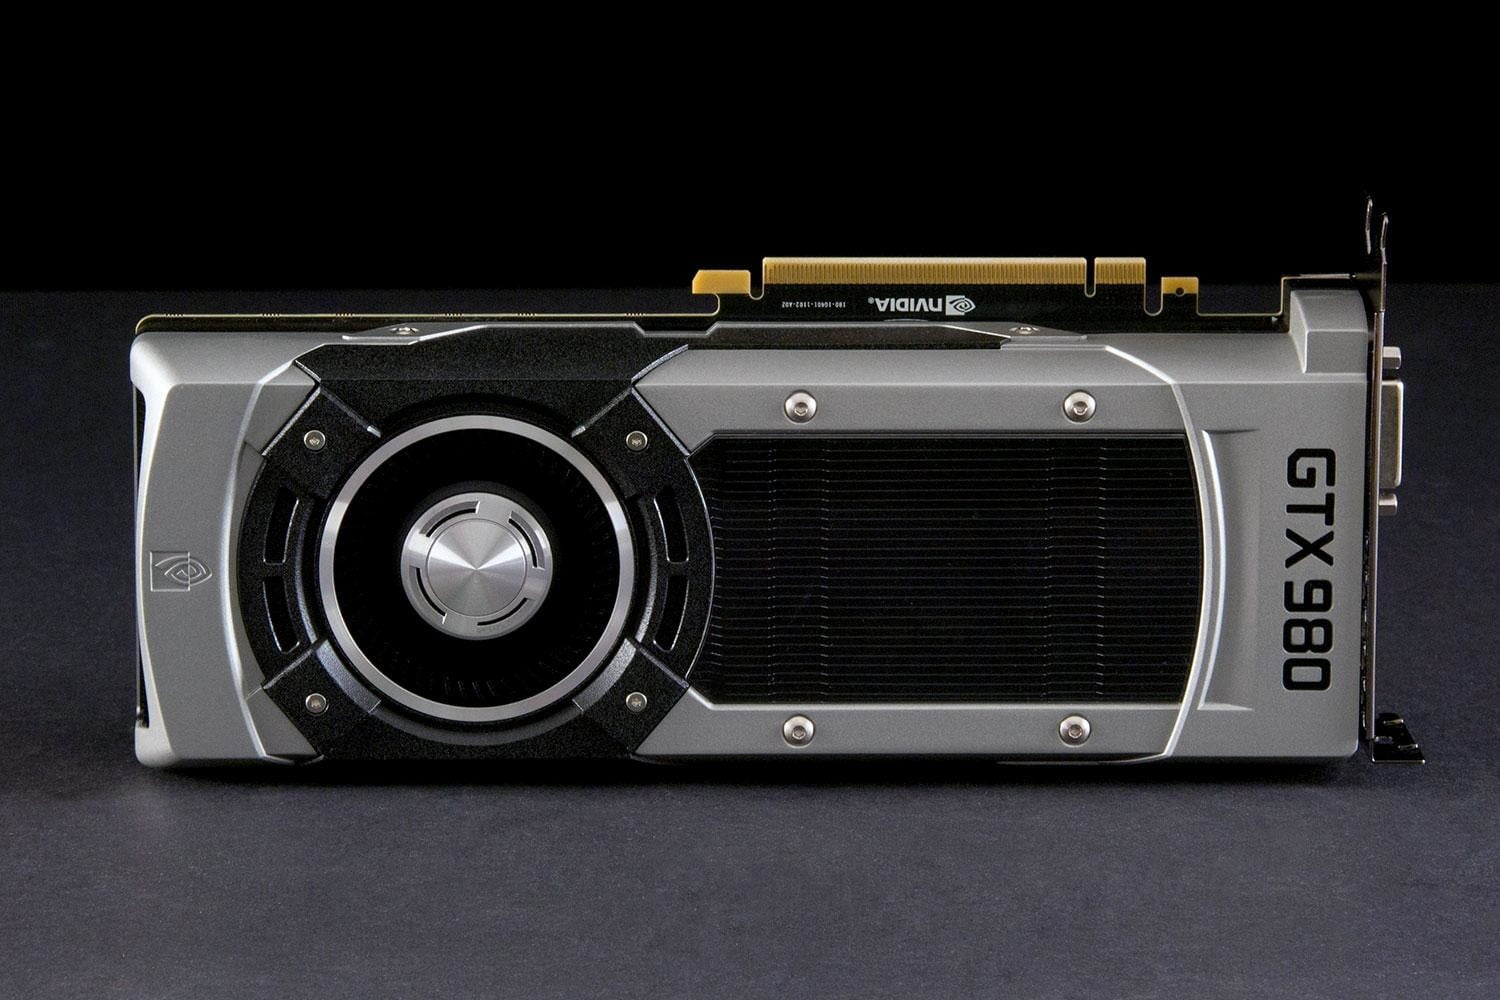 nvidia geforce gtx 980 review gtx980 front full